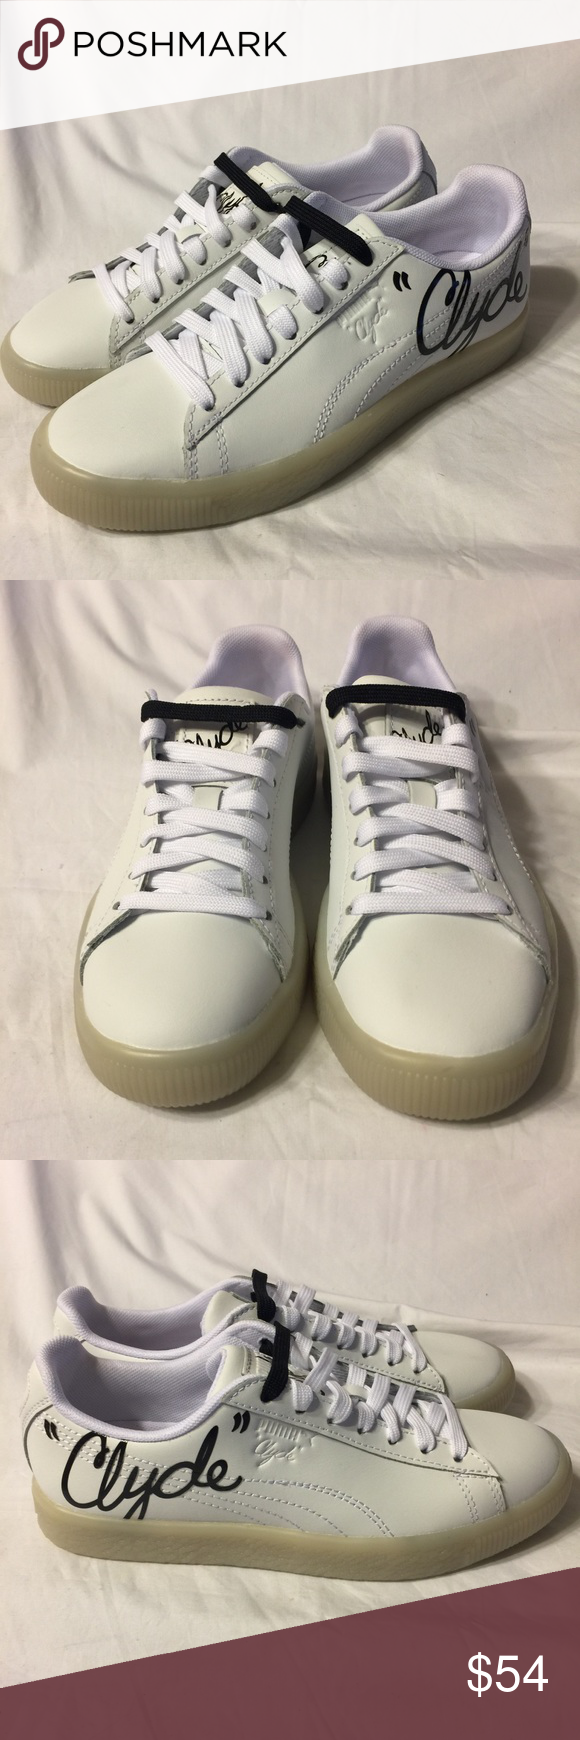 buy popular cb41d 72f0e Puma Clyde Signature Ice white leather shoe 4.5 New without ...